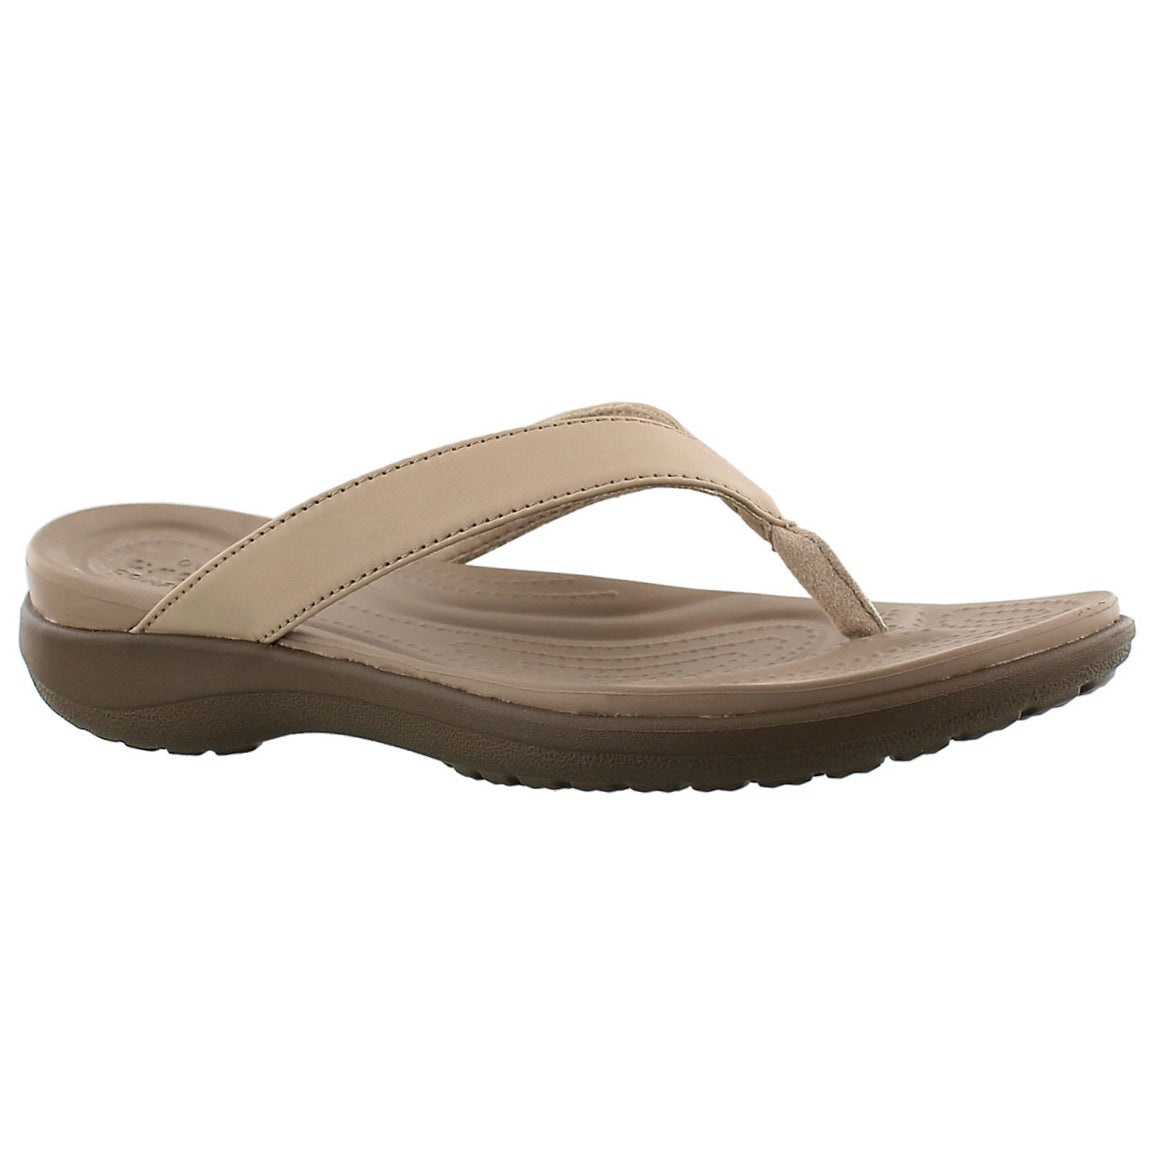 Women's CAPRI V FLIP chia/walnut thong sandals